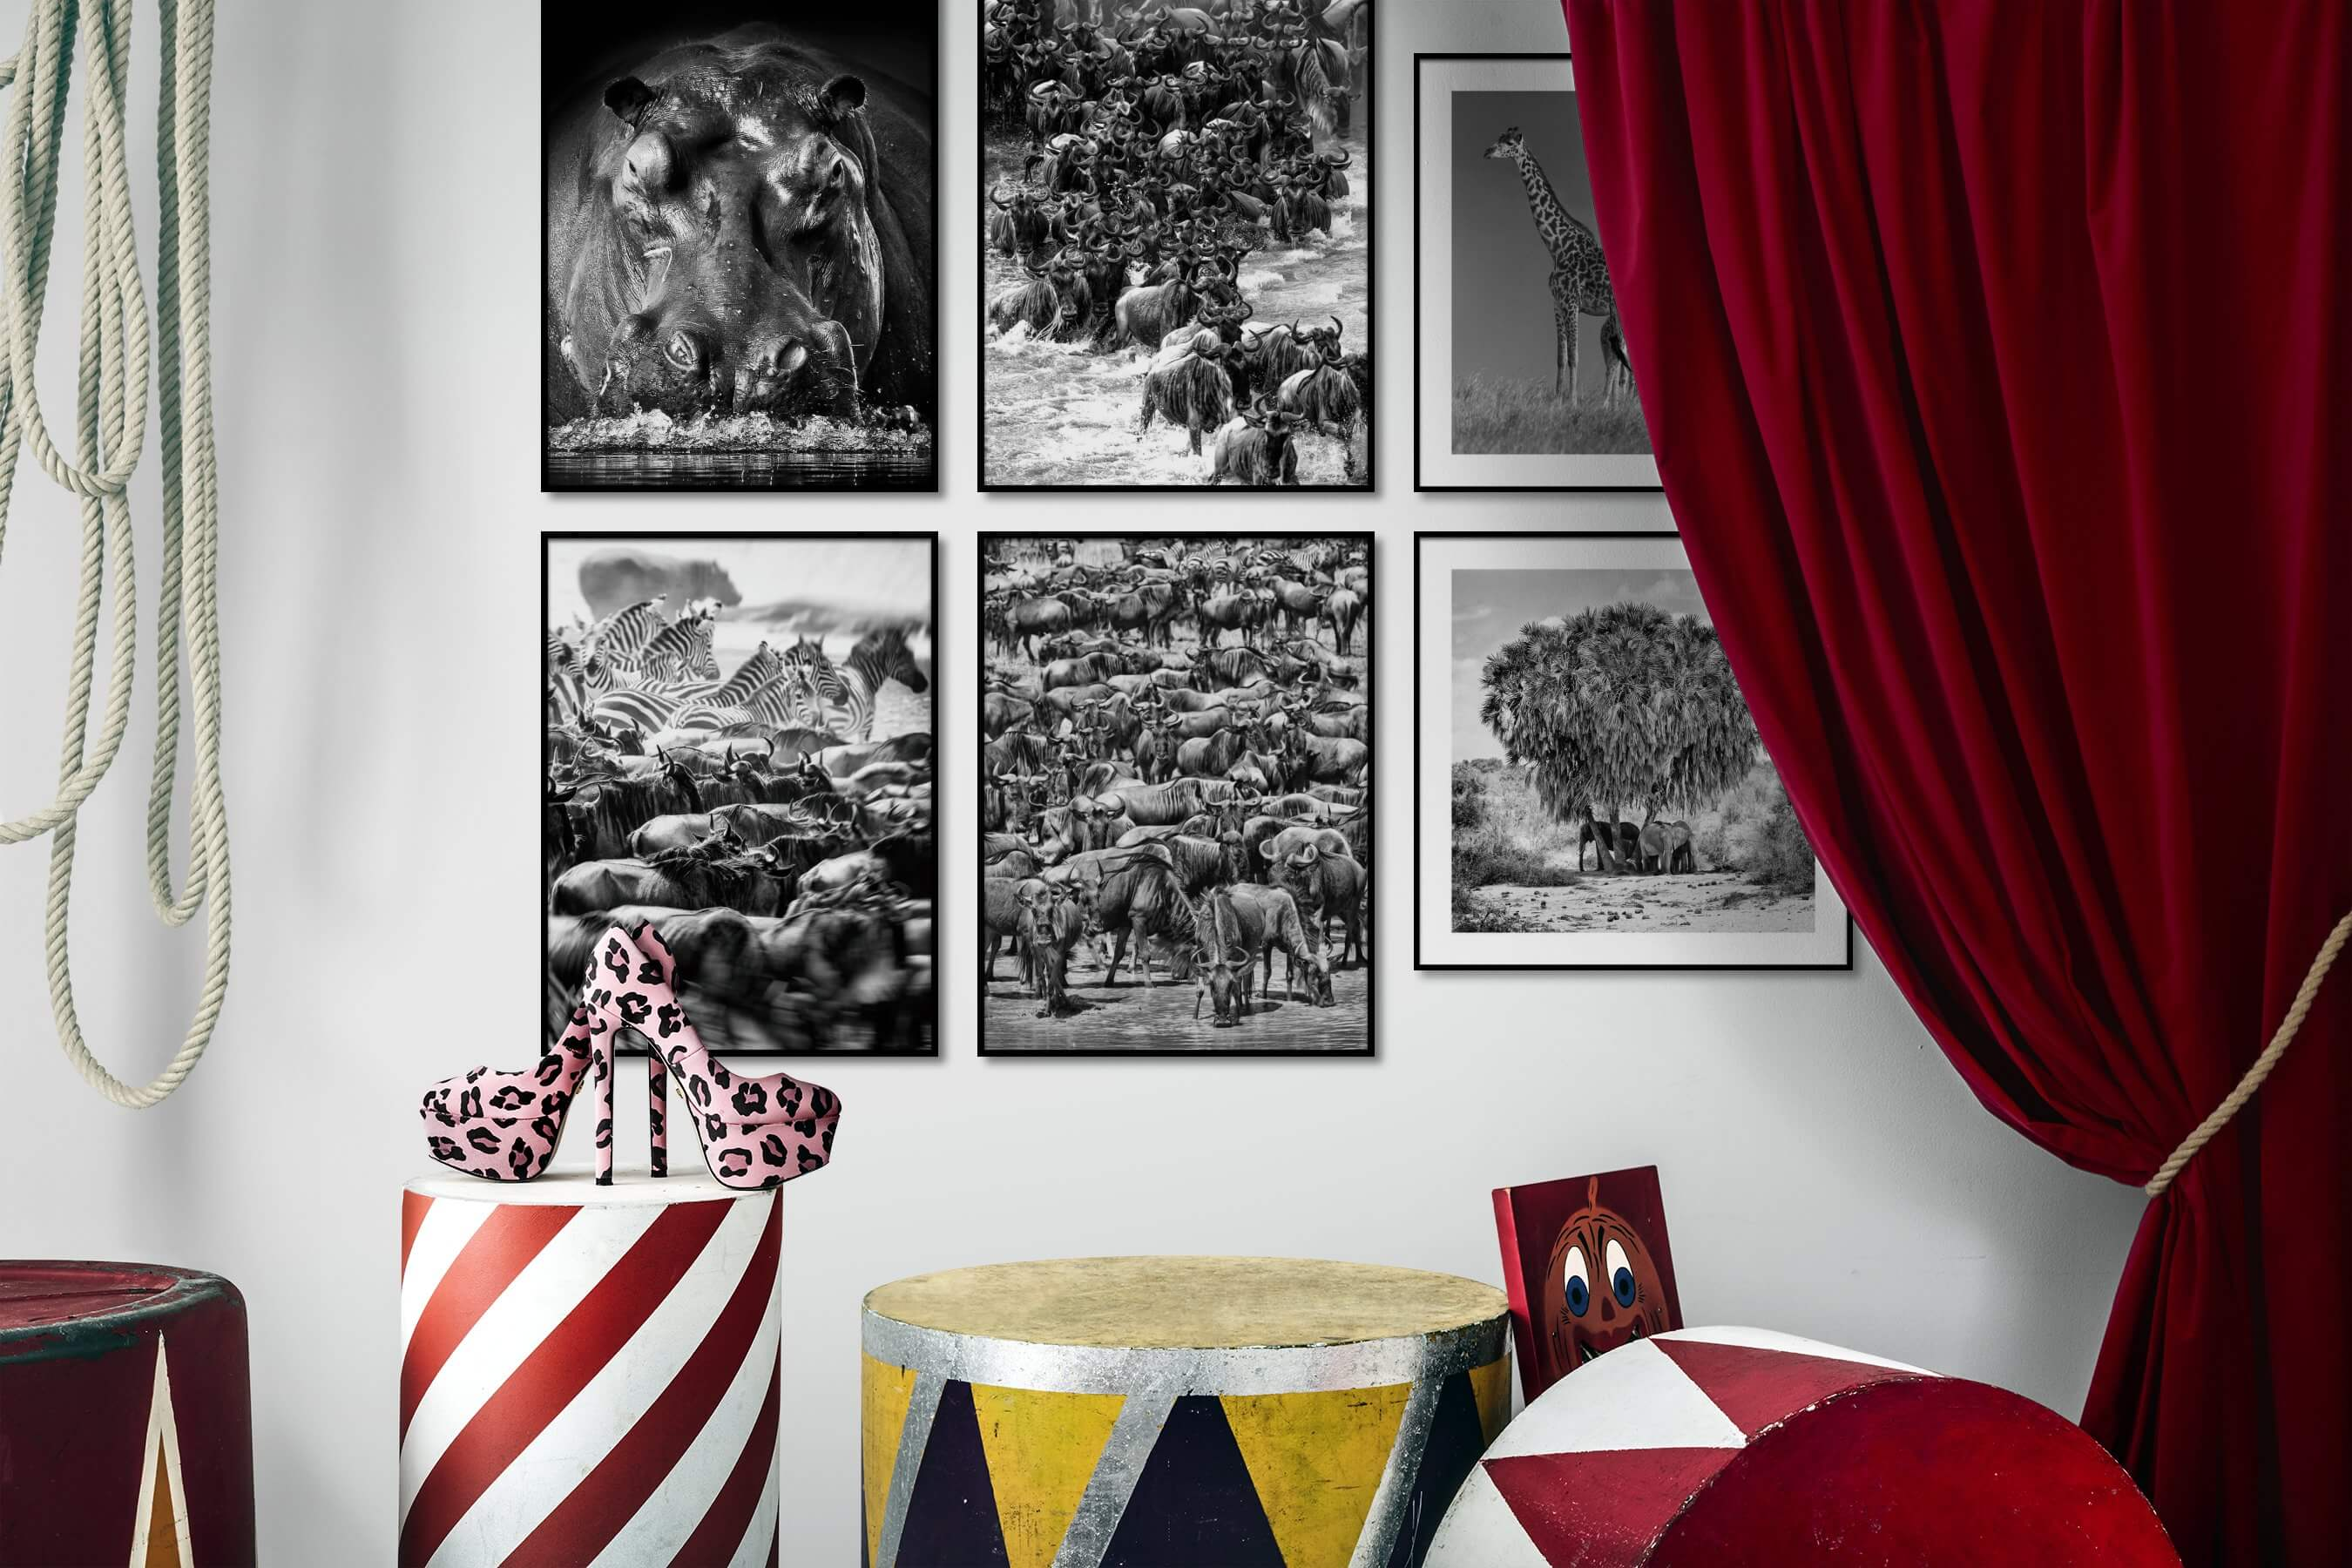 Gallery wall idea with six framed pictures arranged on a wall depicting Black & White, Animals, For the Maximalist, and Nature